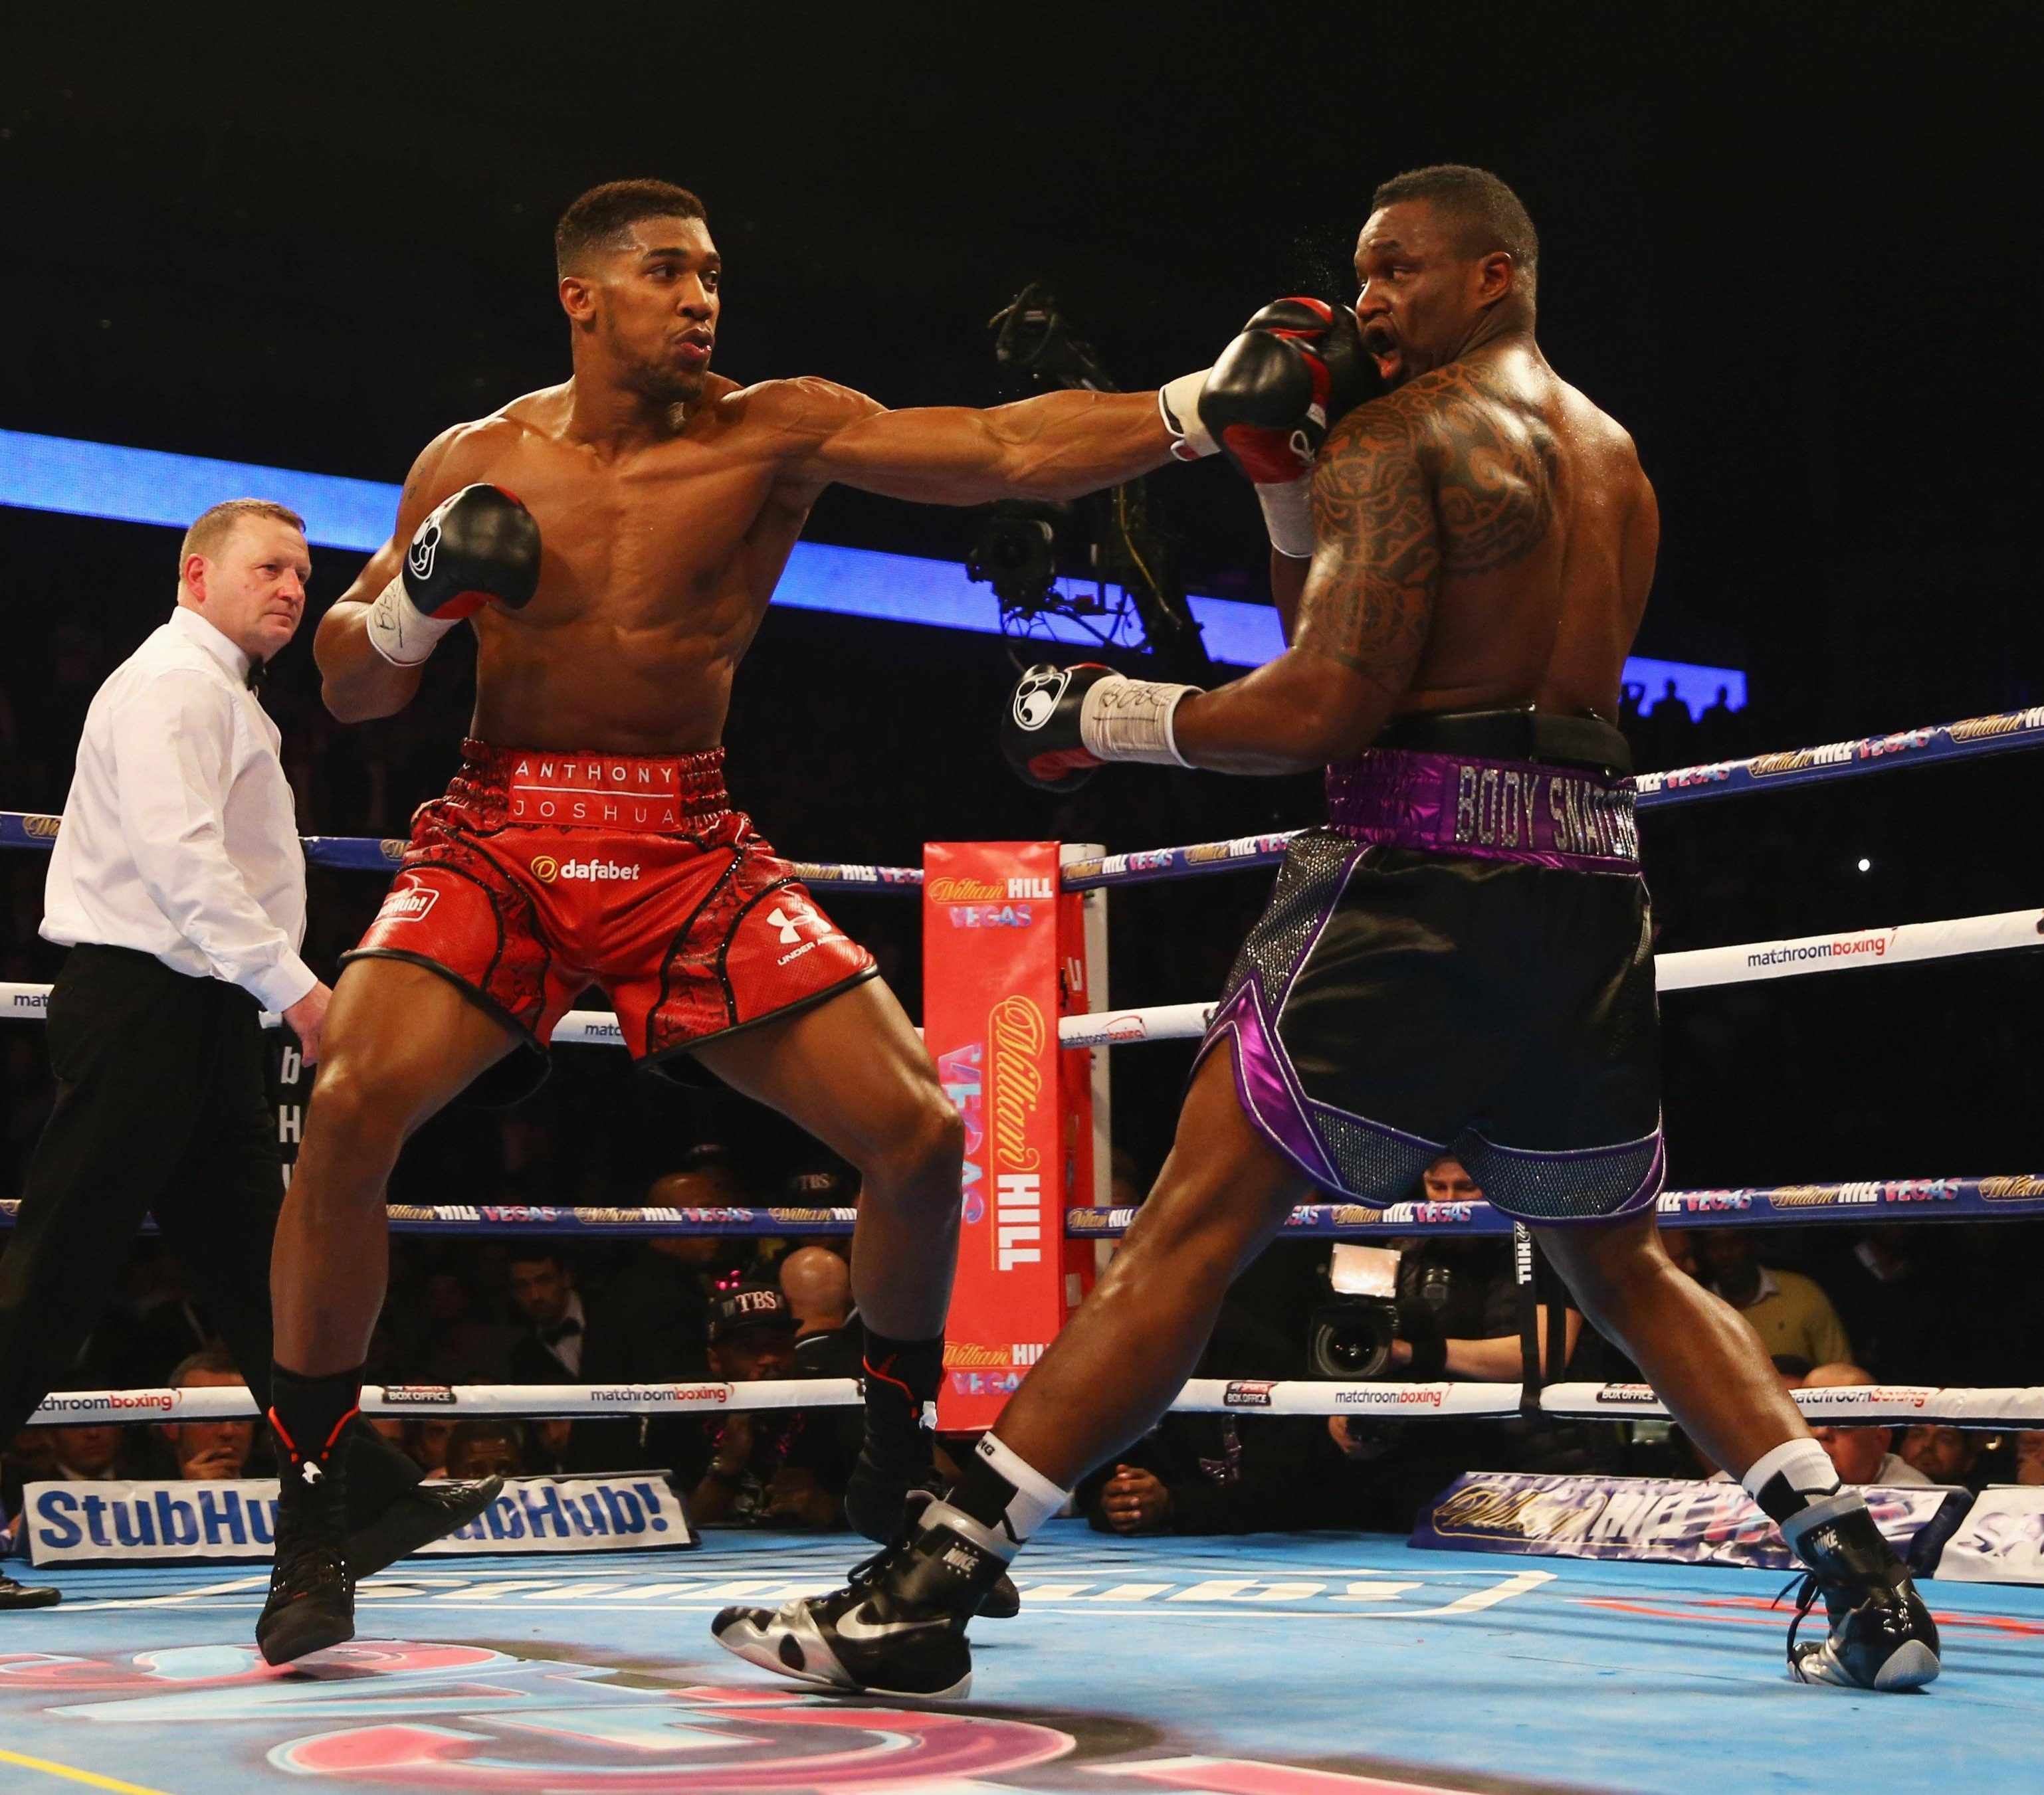 Anthony Joshua came out on top against Dillian Whyte in the seventh round